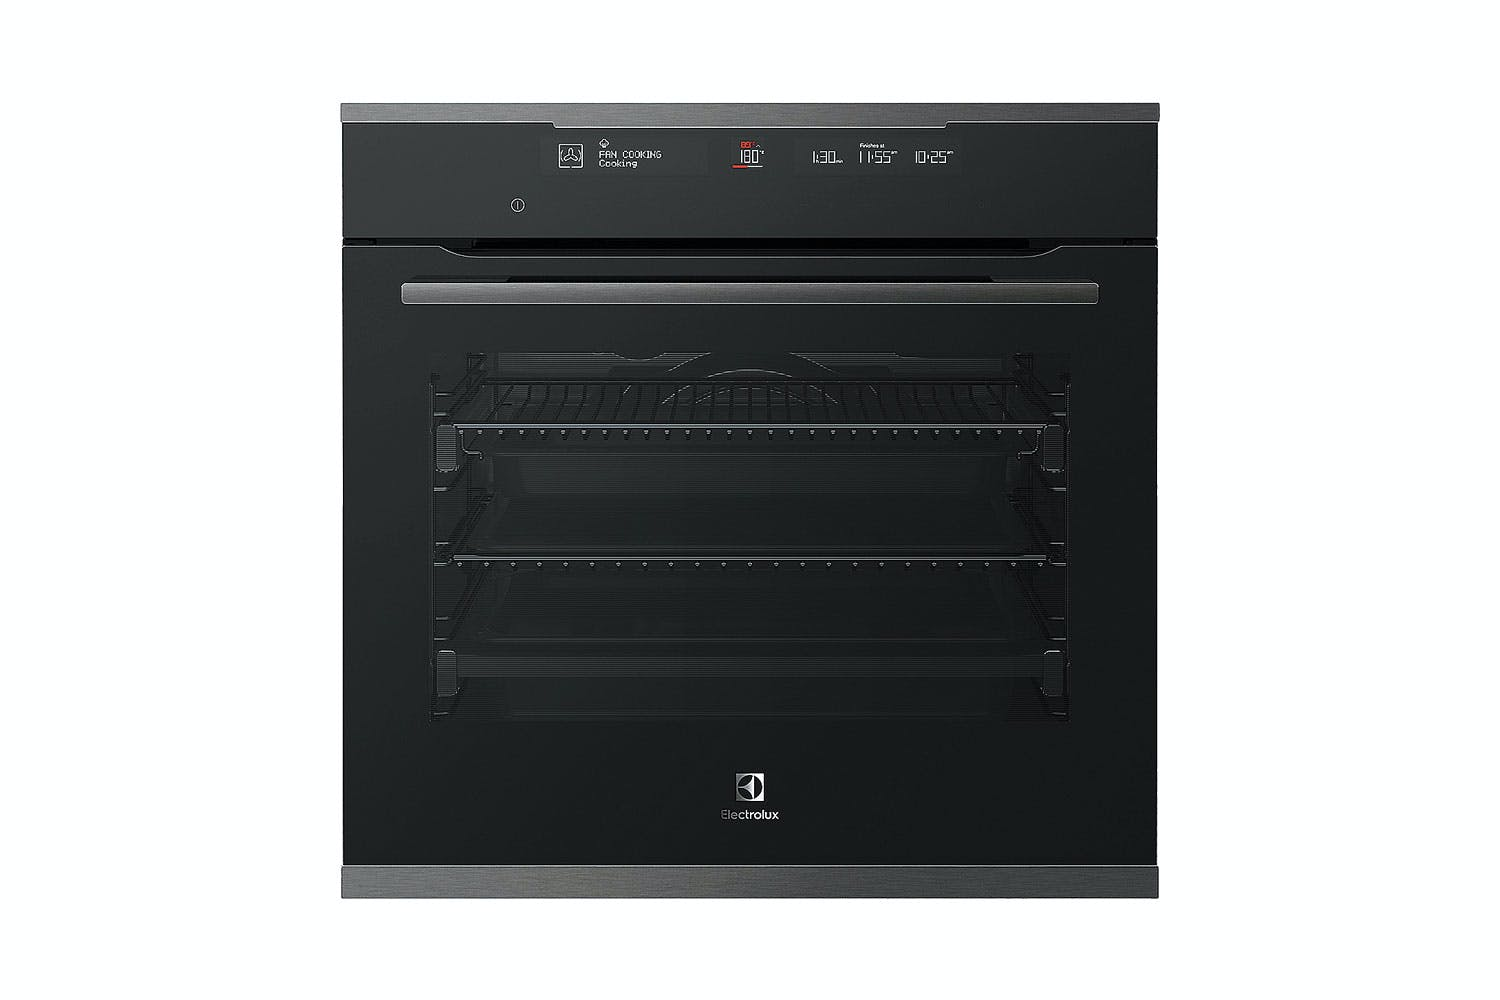 Image of Electrolux 60cm 13 Function Pyrolytic Oven